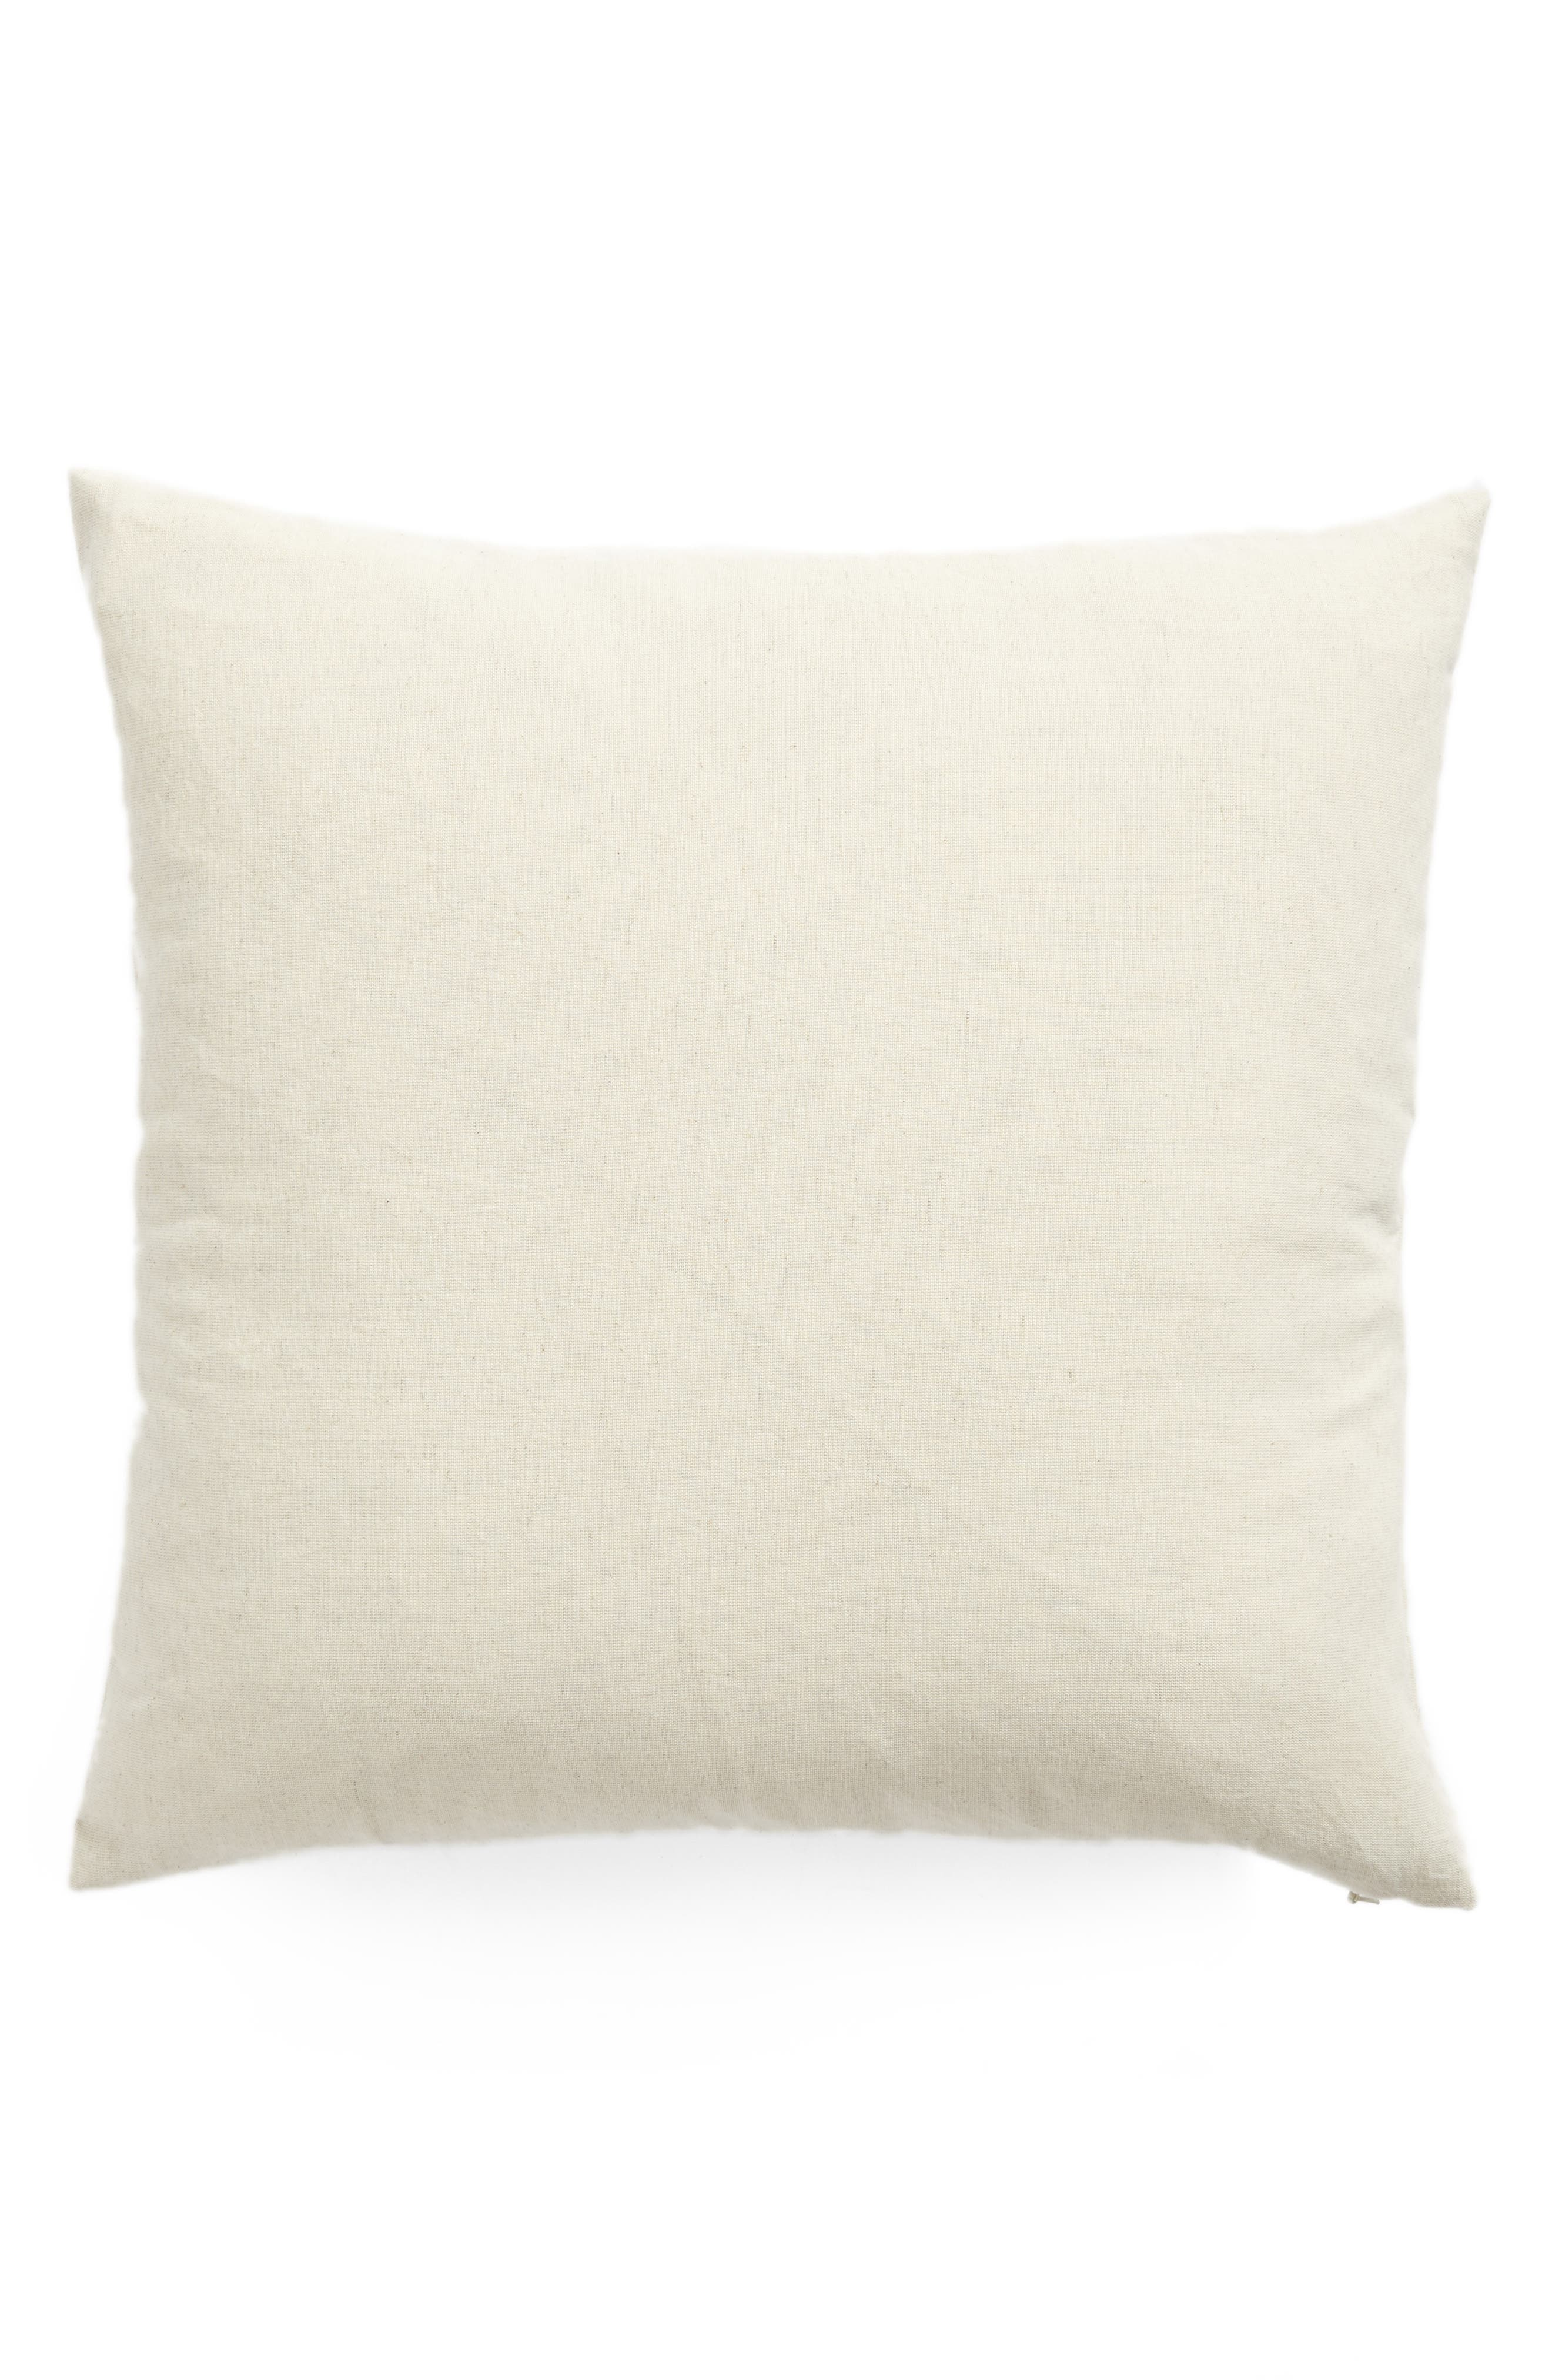 Hugs & Kisses Accent Pillow,                             Alternate thumbnail 3, color,                             Pink Brick O